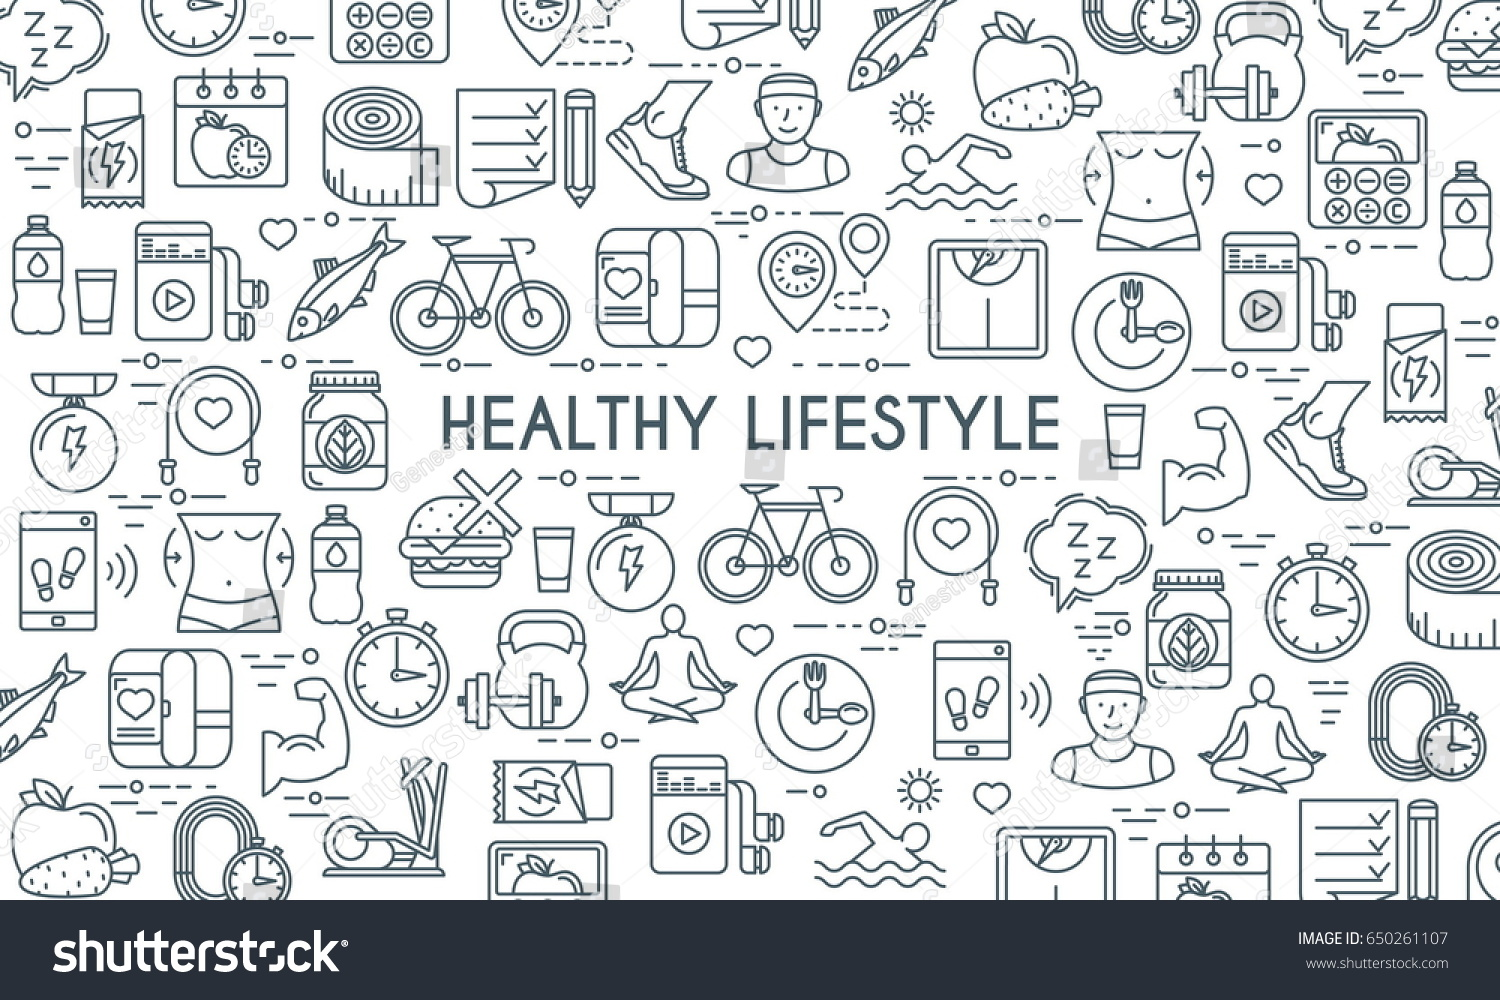 Healthy lifestyle banner. Design template with thin line icons on theme fitness, nutrition and dieting. Vector illustration